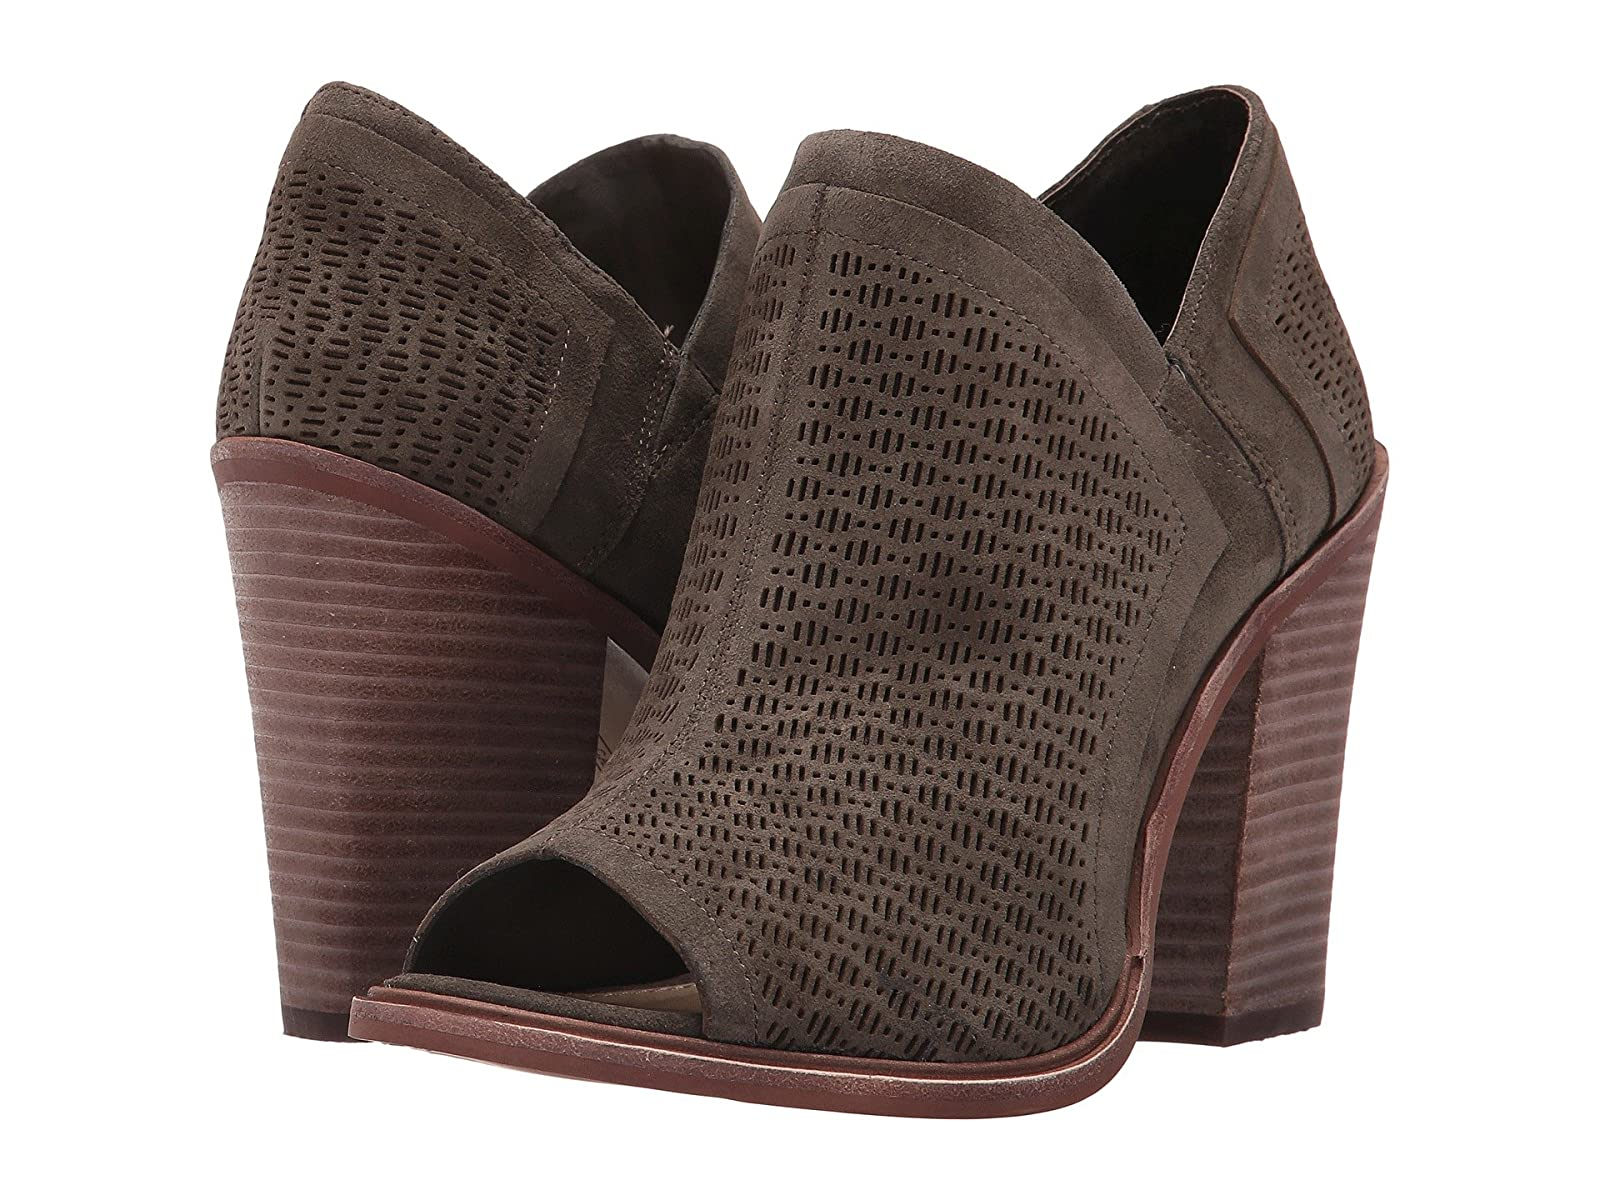 Vince Camuto KariniCheap and distinctive eye-catching shoes